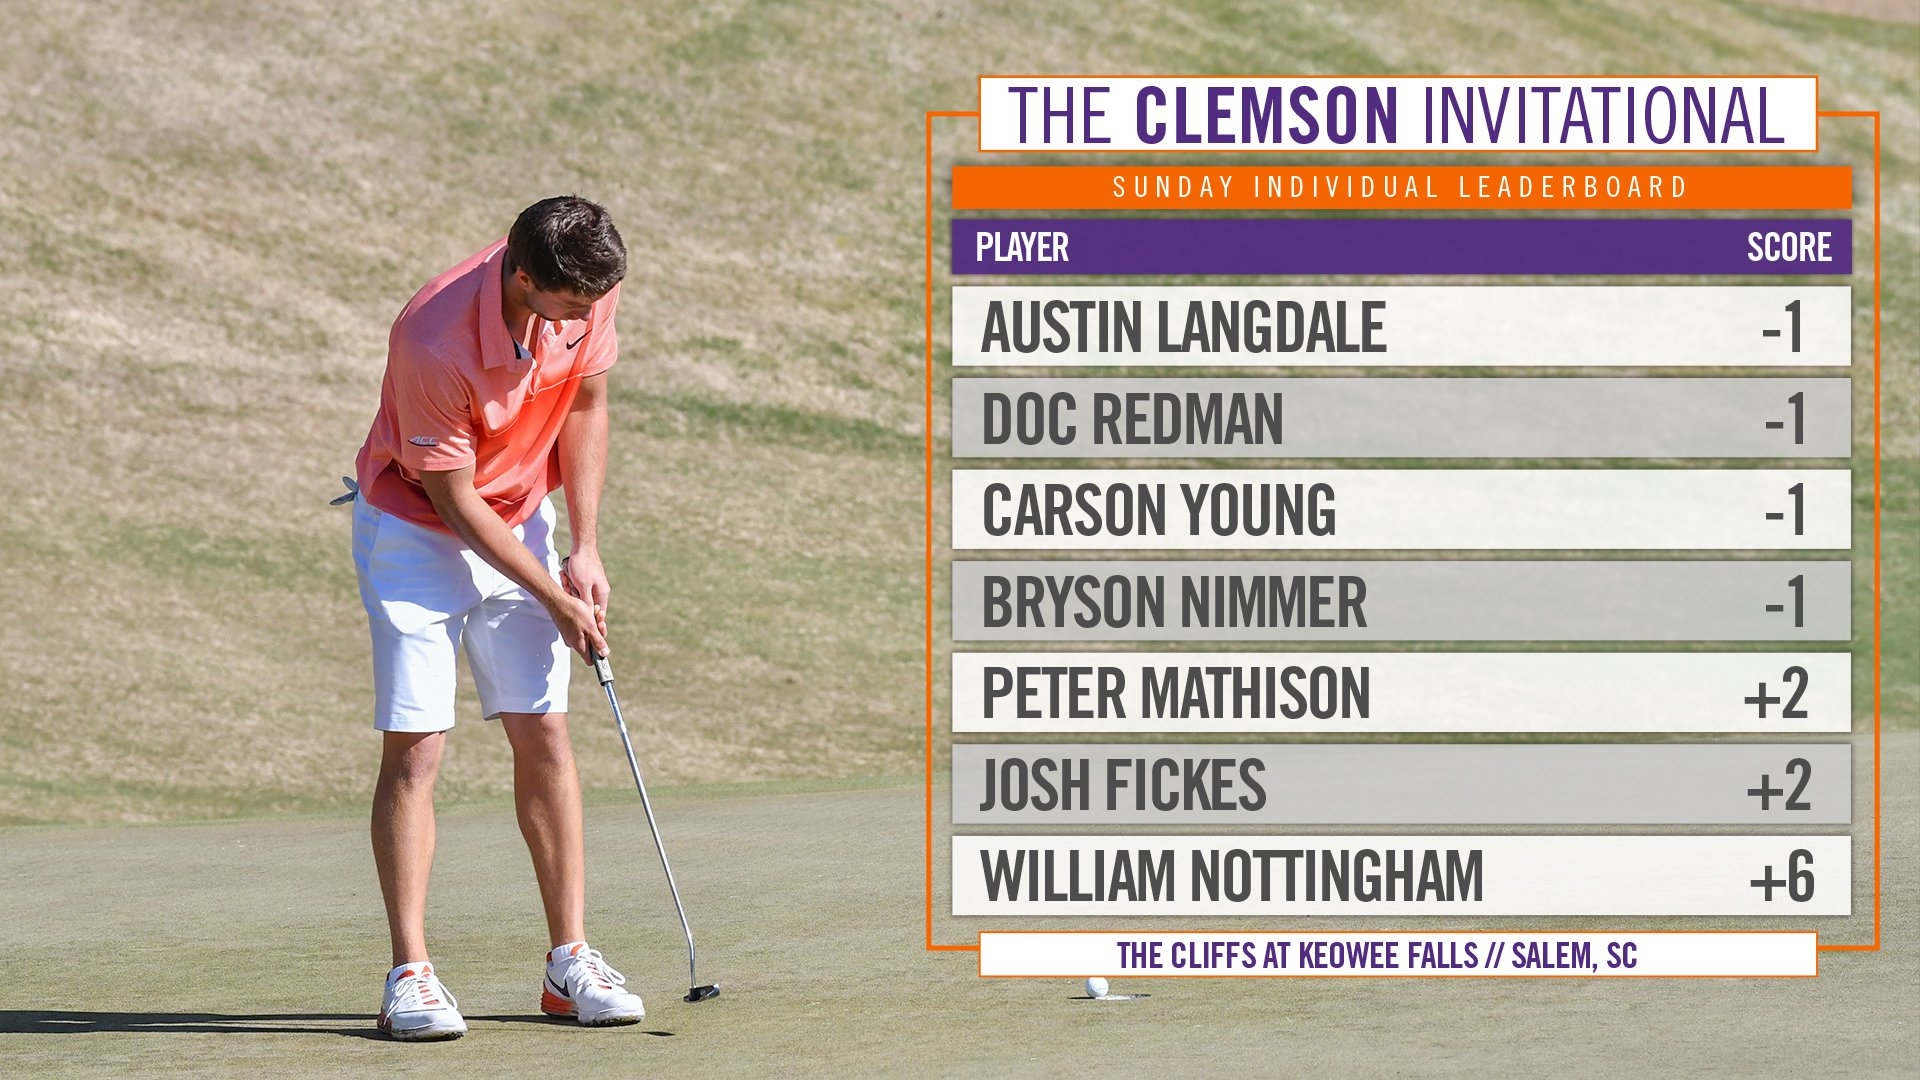 Today's leaderboard for your #ClemsonInvitational 🏆champions🏆 https://t.co/IUtzGLMZeh